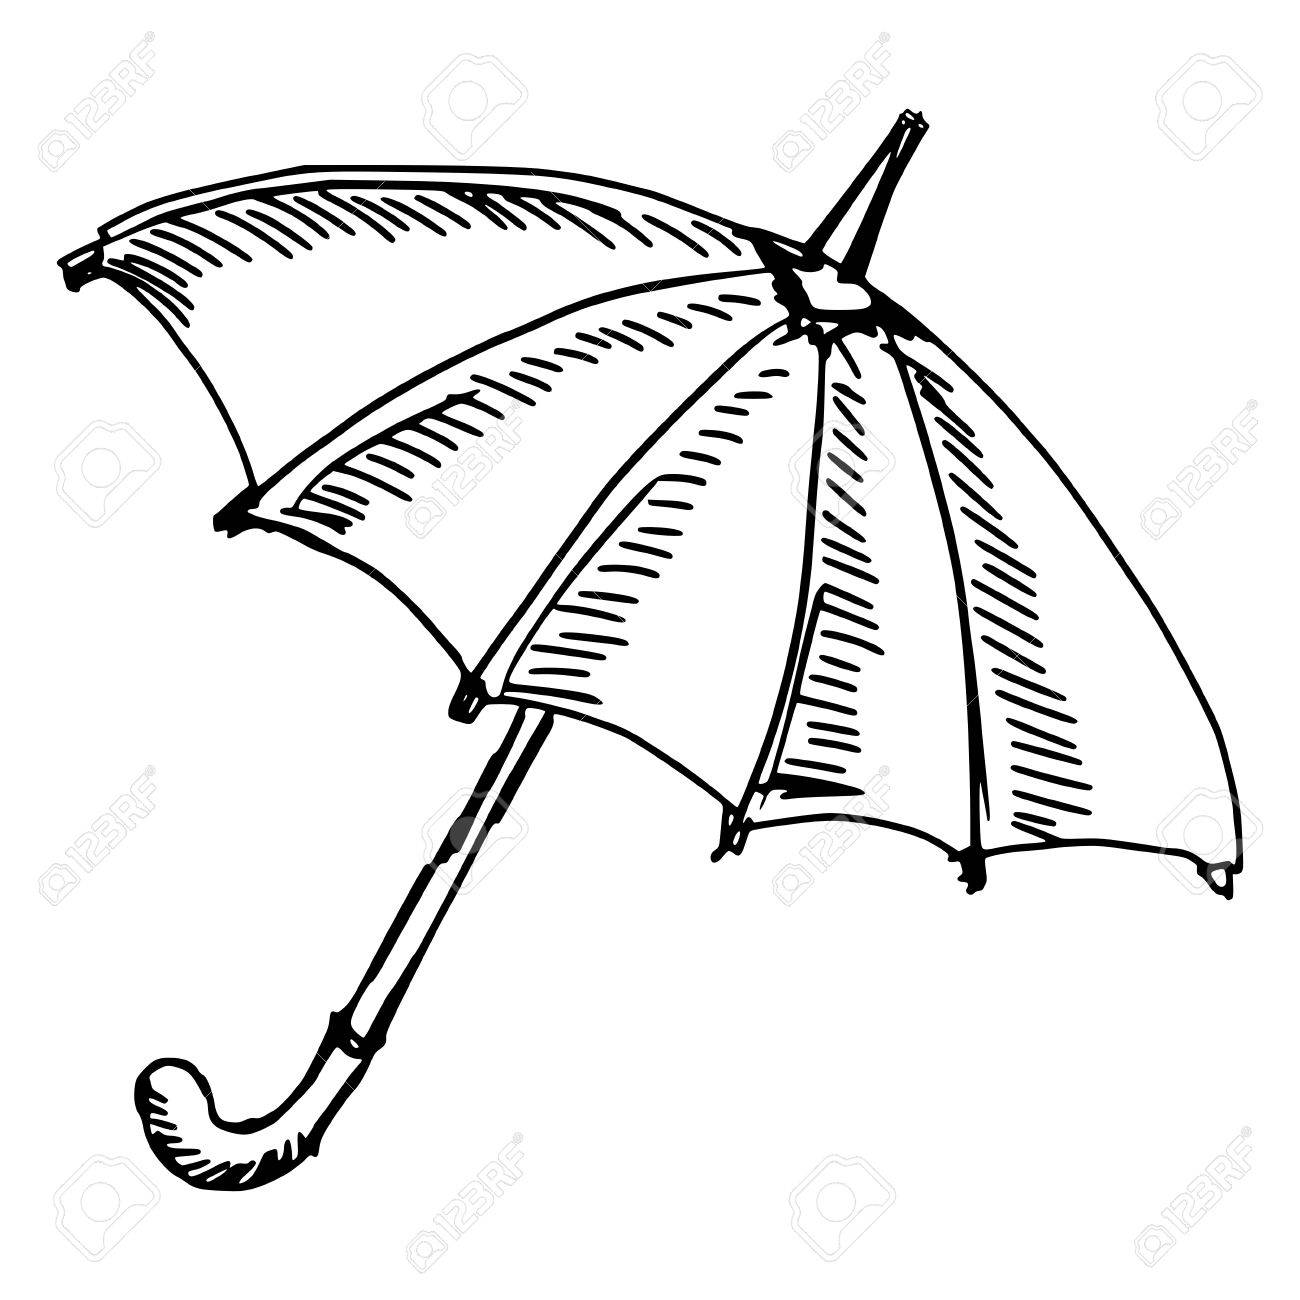 1300x1300 Hand Drawn, Sketch Illustration Of Umbrella Royalty Free Cliparts